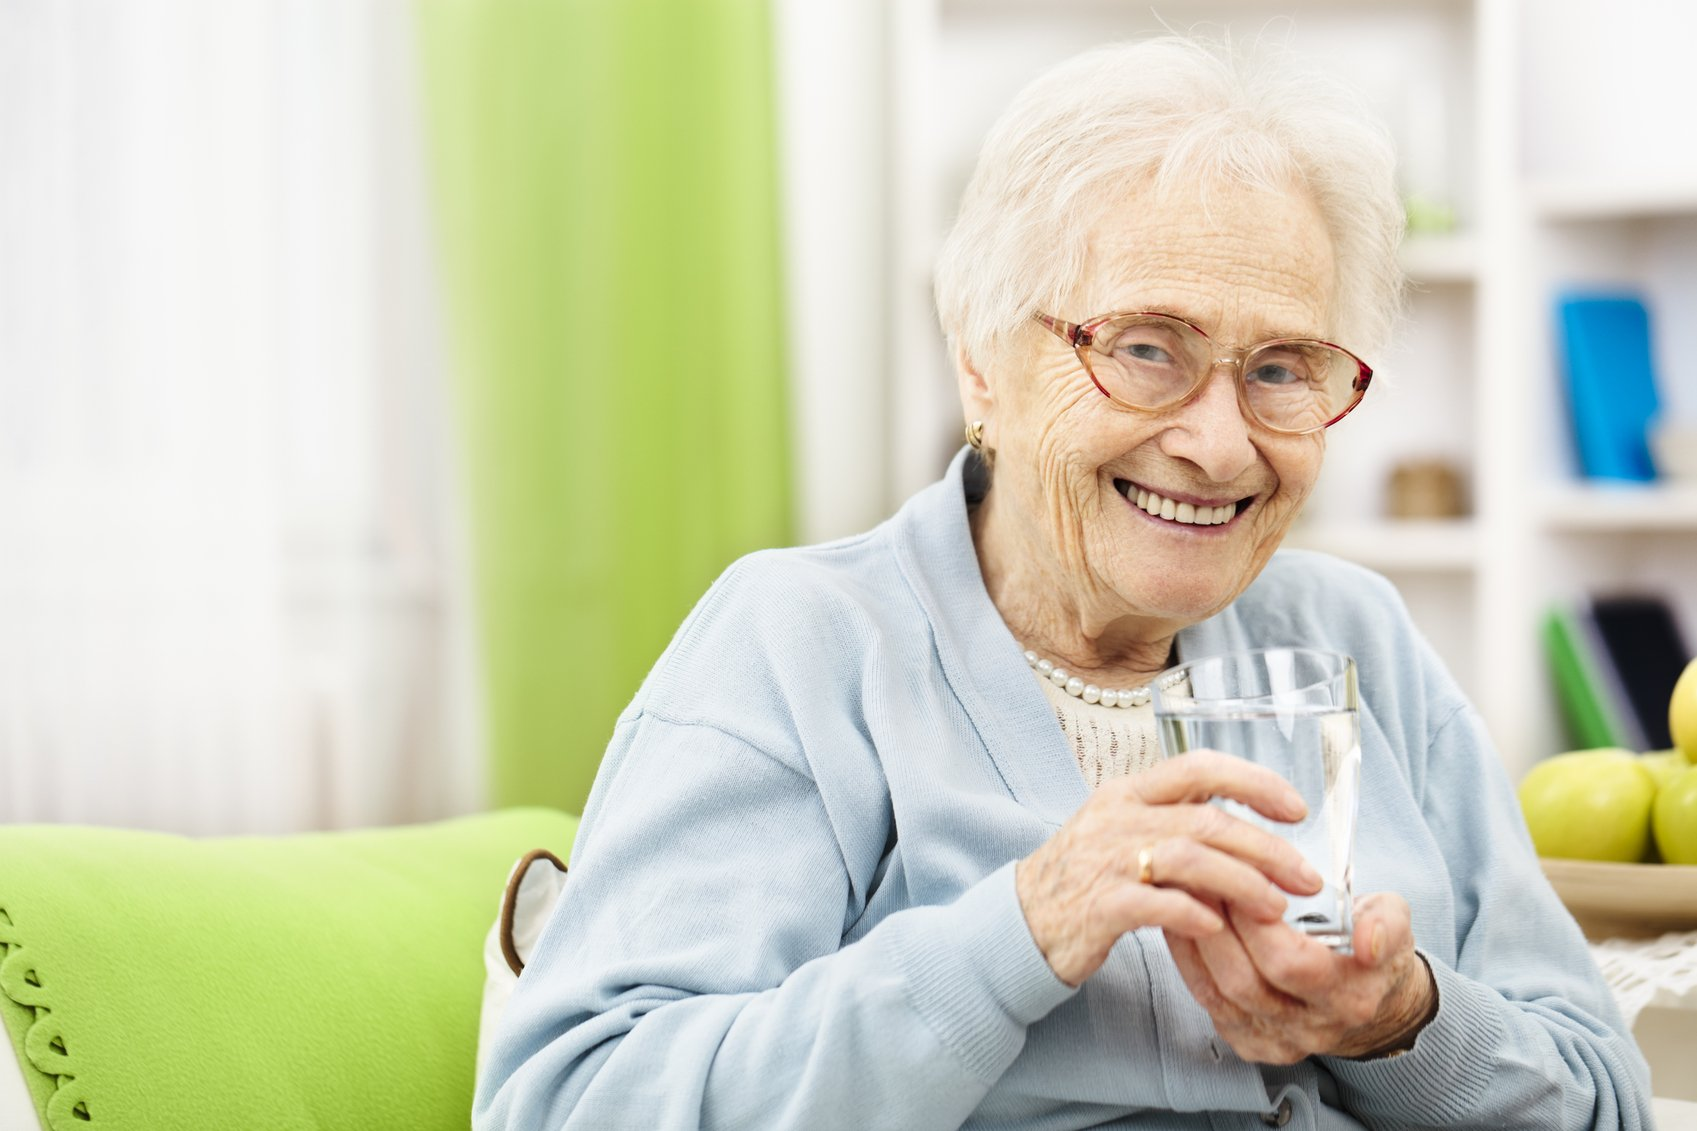 elderly woman drinking a glass of water